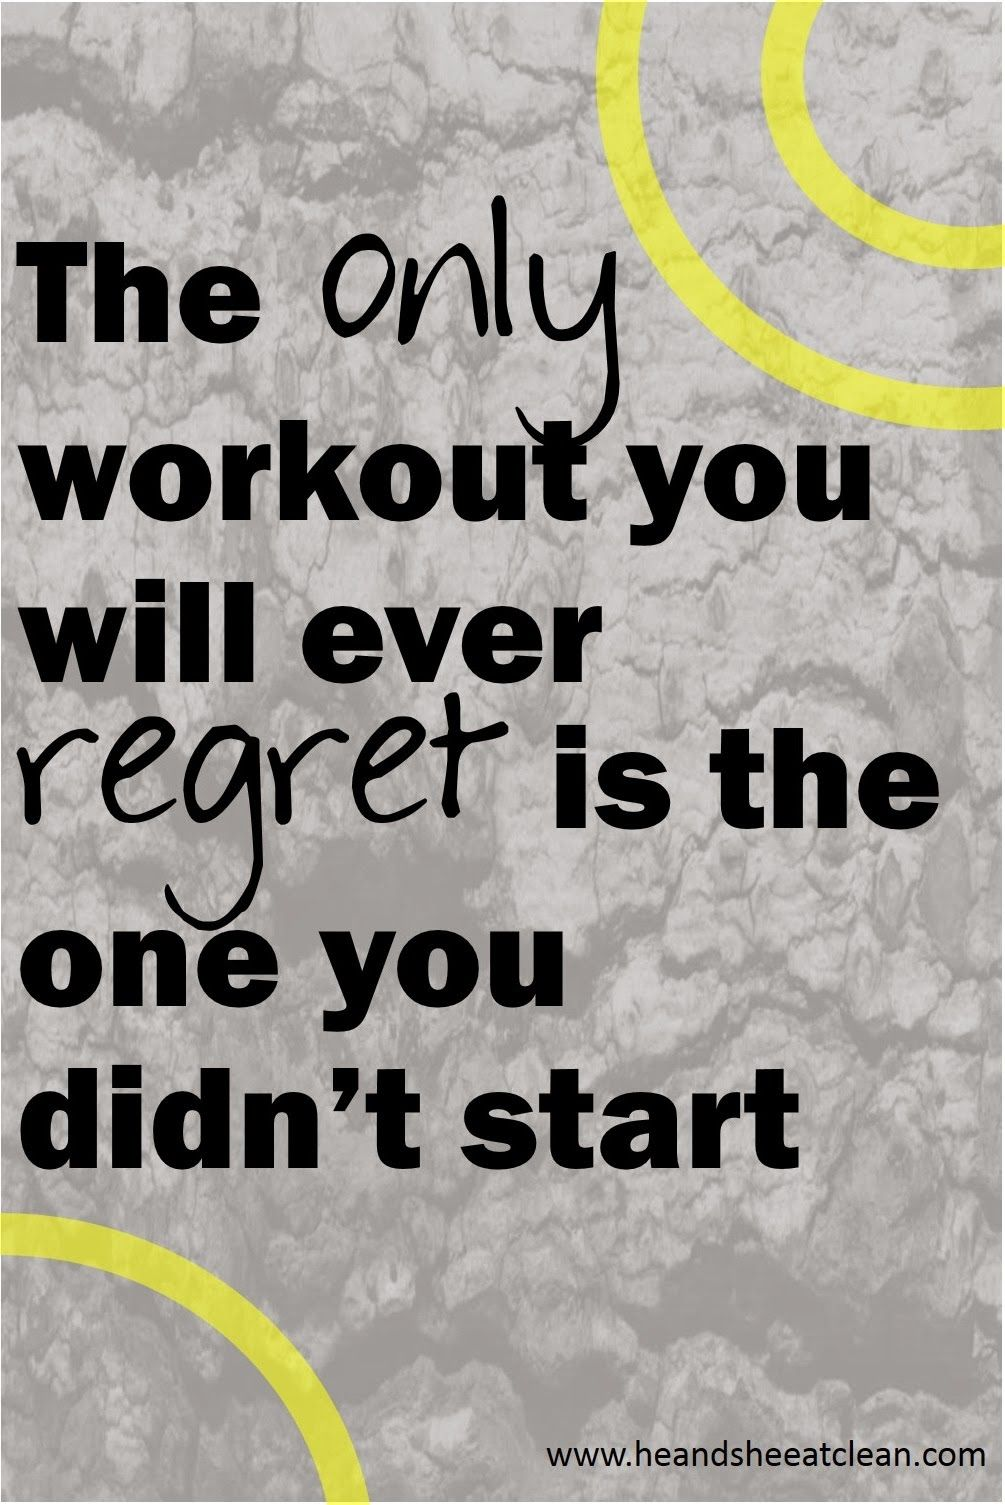 Cell Phone Quotes Free Motivational Cell Phone Wallpaper Backgrounds  Free Fitness